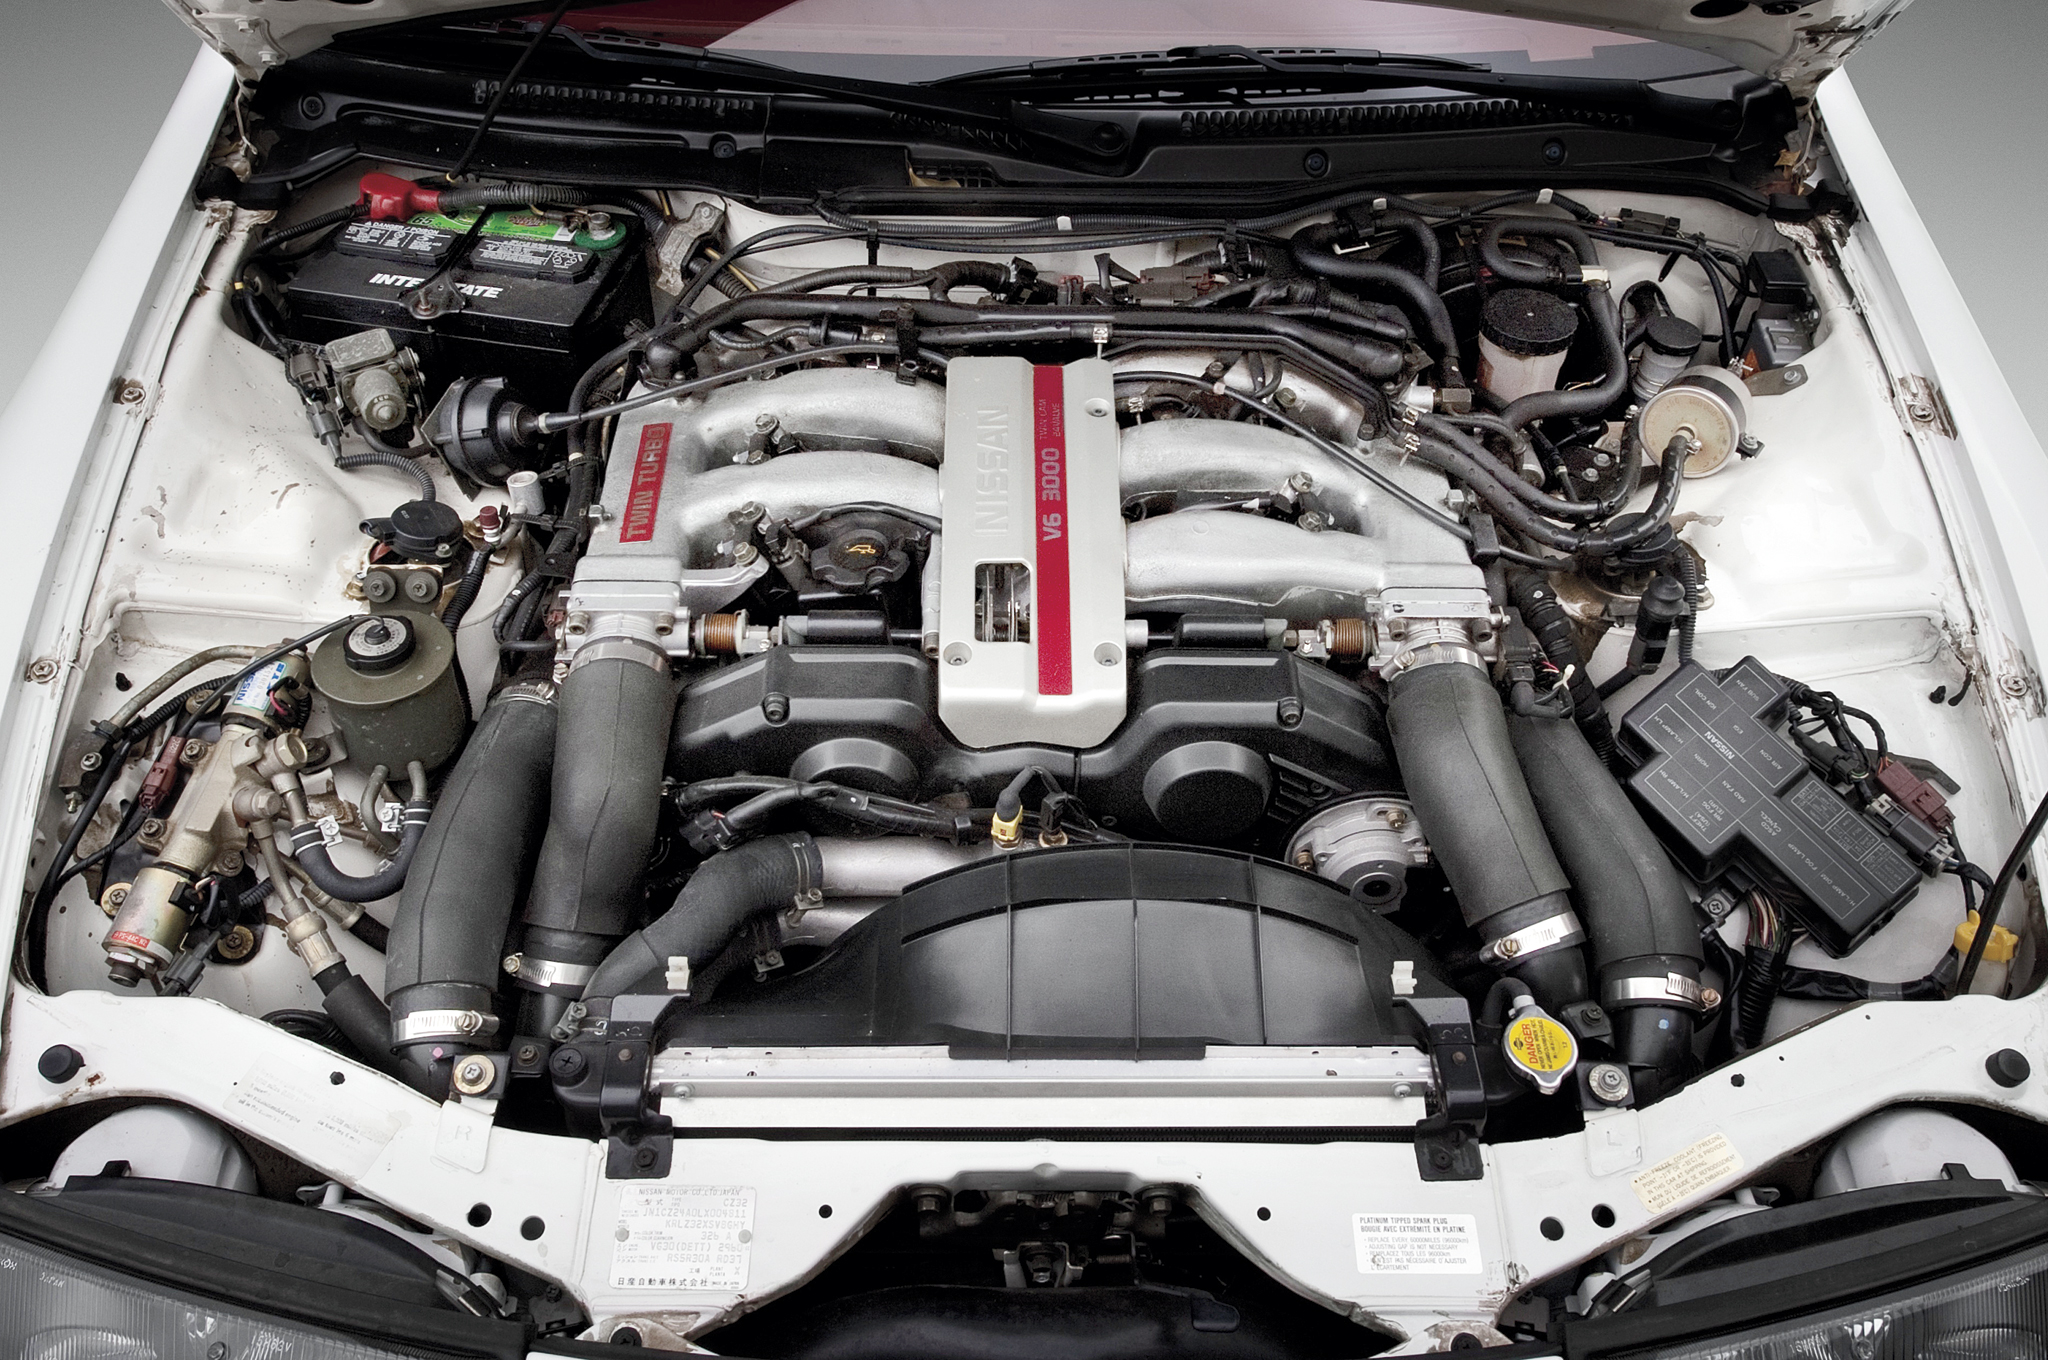 hight resolution of wiring diagram besides nissan 300zx engine bay also 300zx engine wiring diagram for you